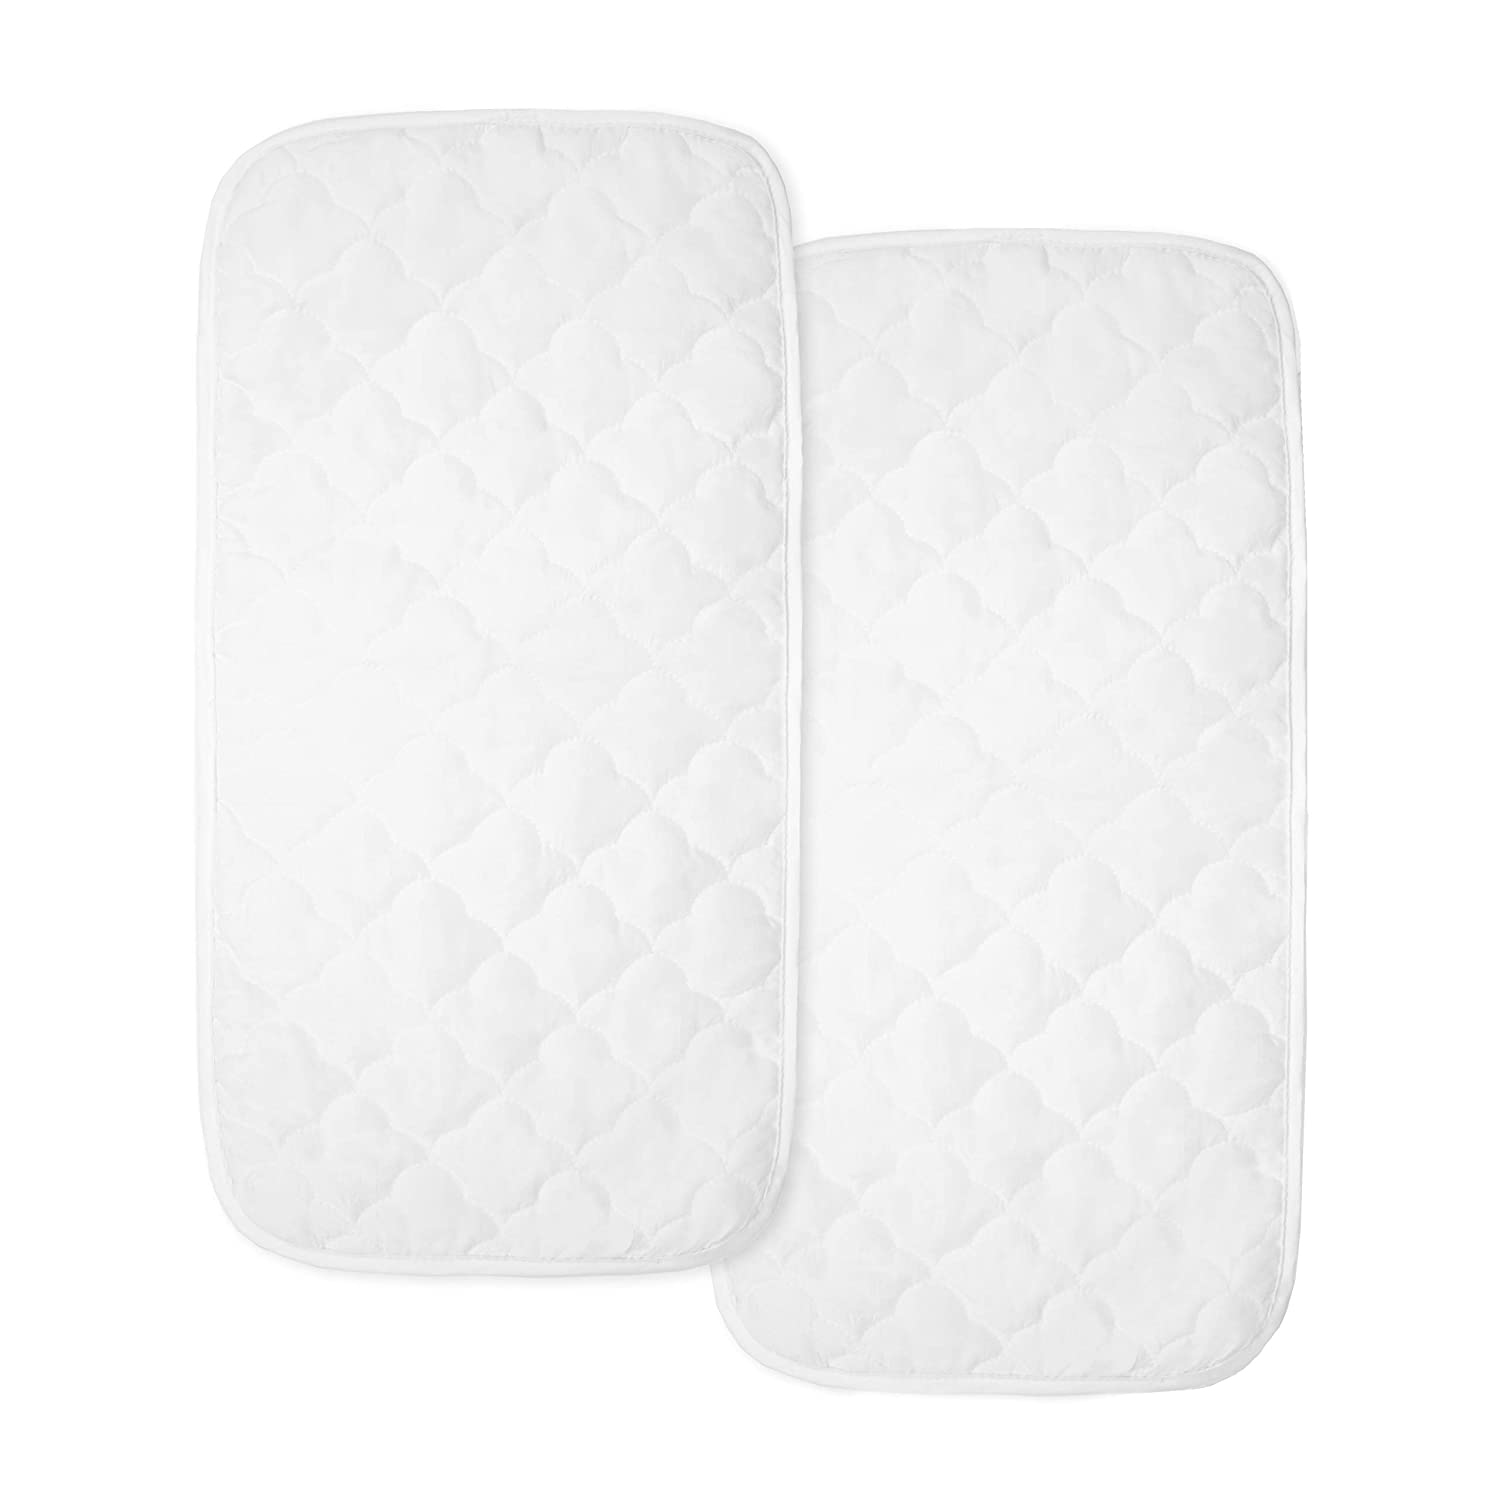 American Baby Company Ultra Soft Quilted Waterproof Multi-Purpose Changing Table Pad Liners, 13